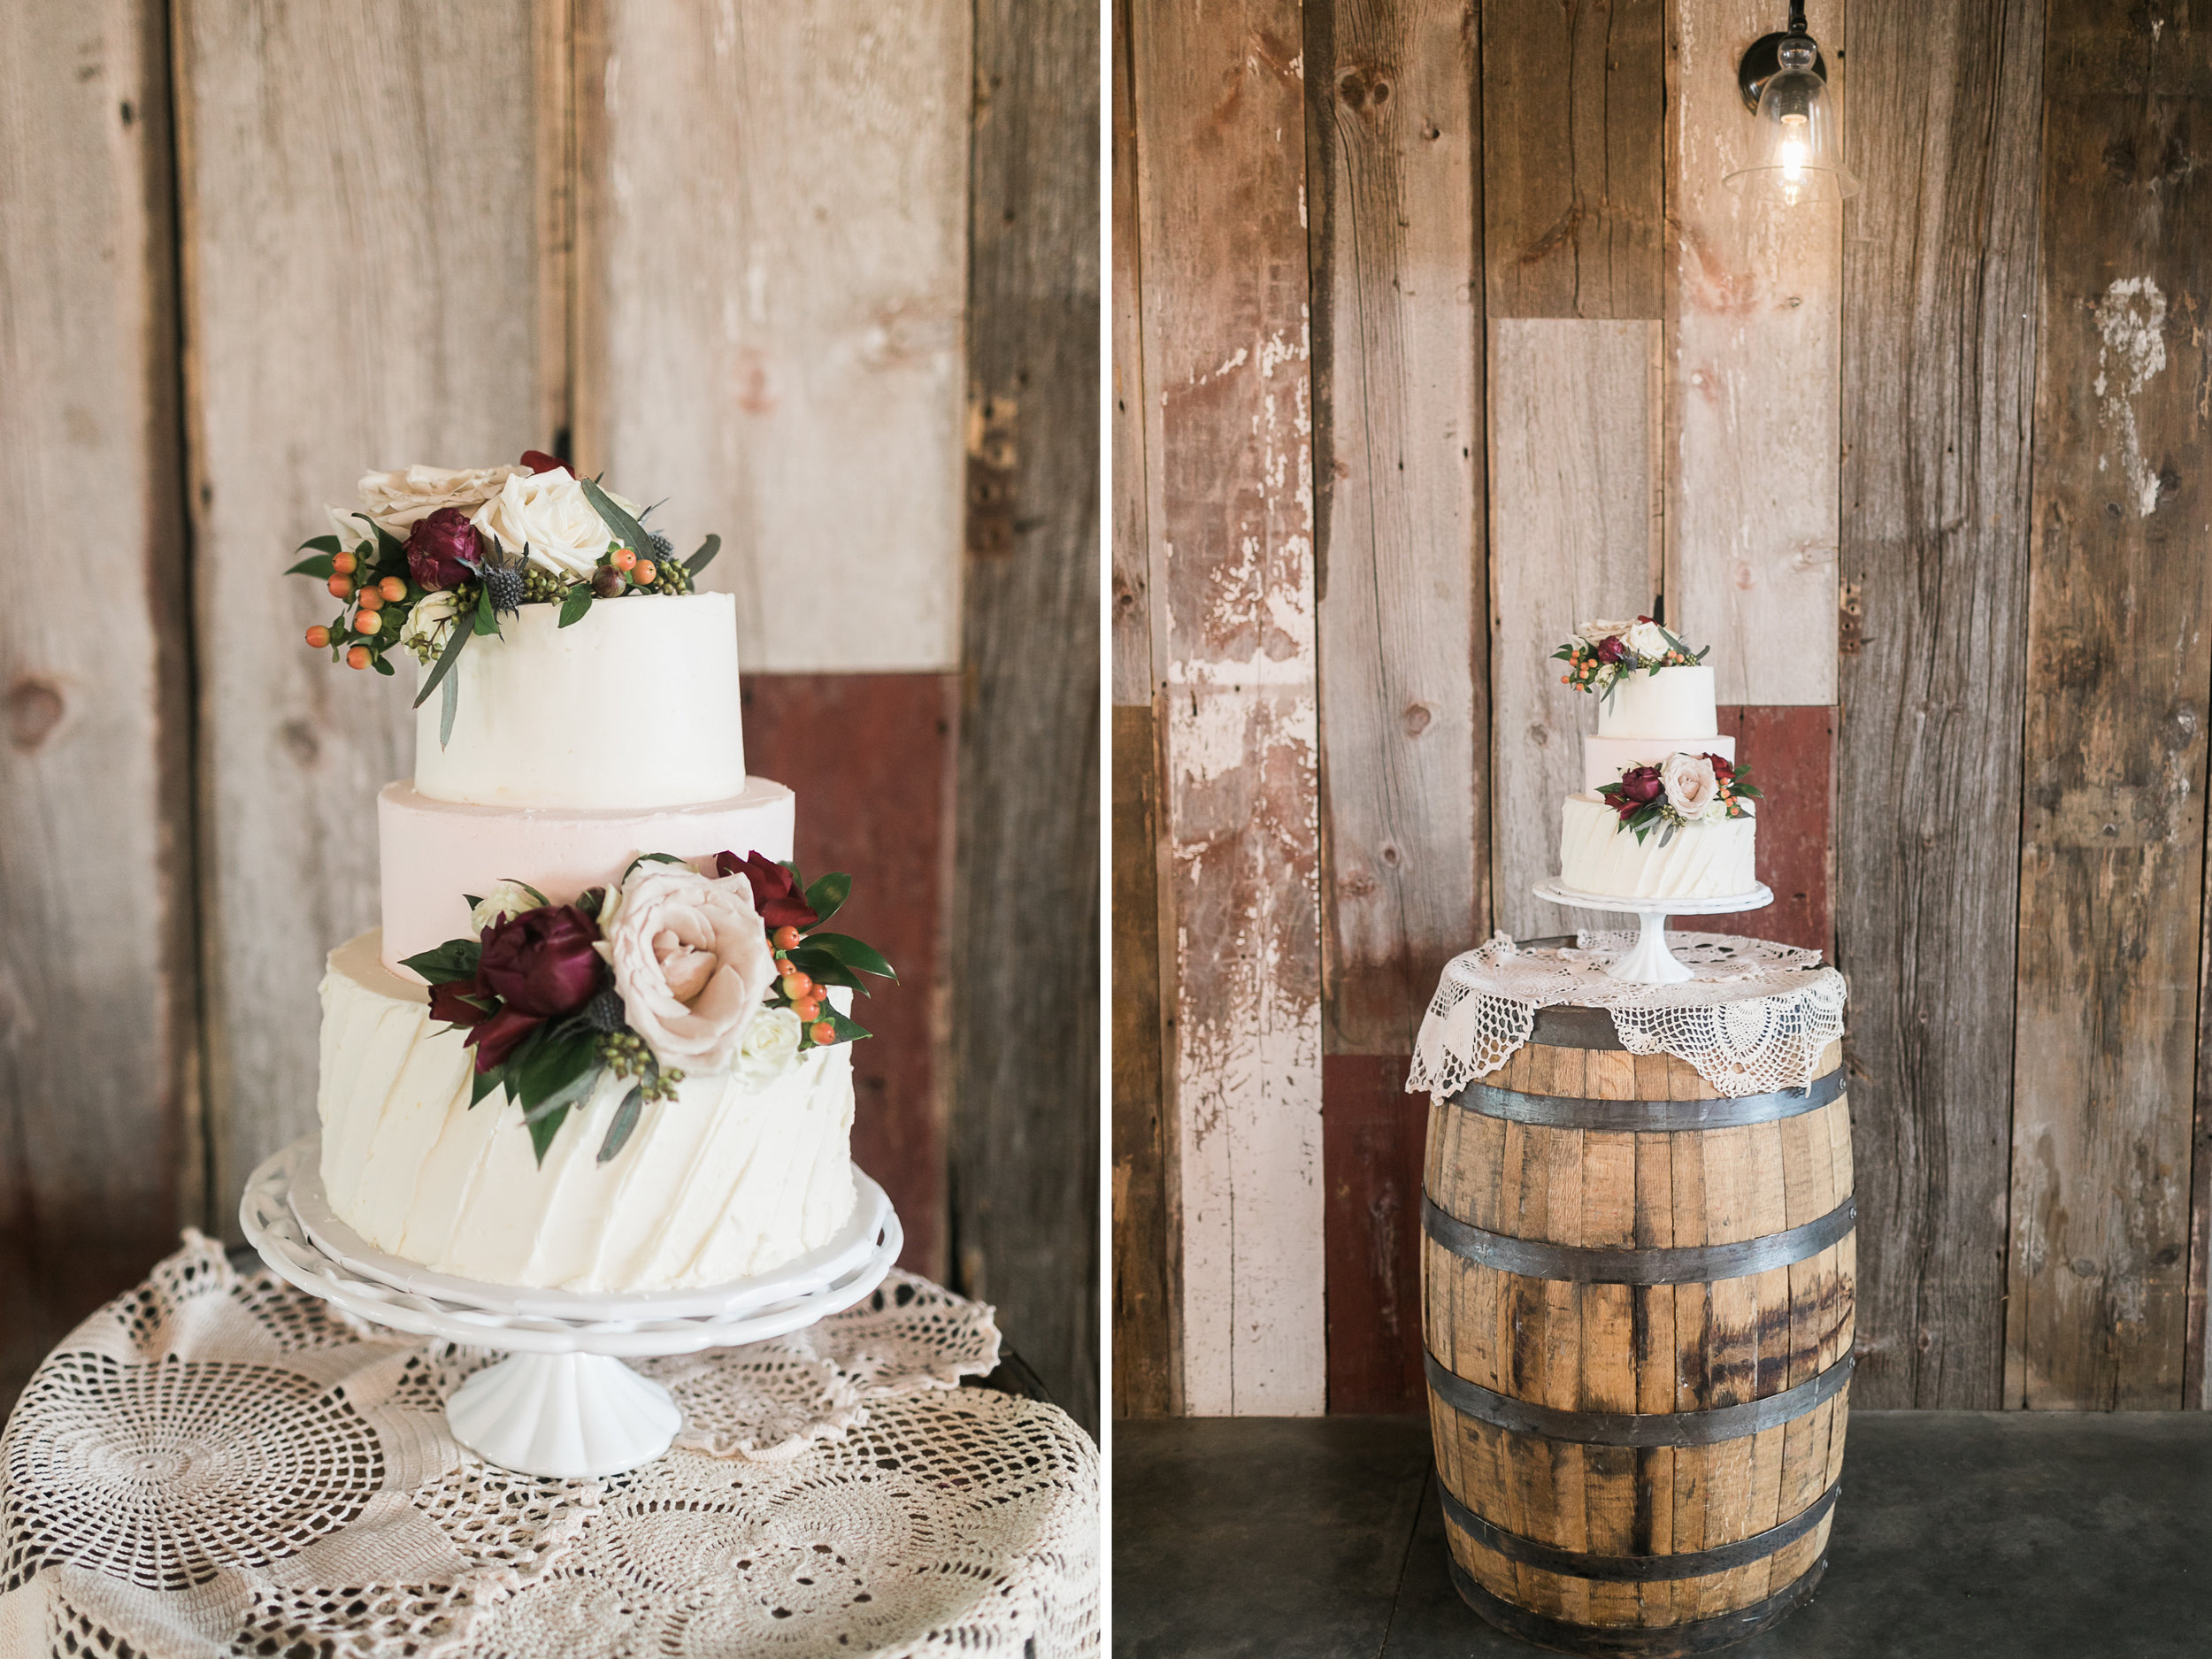 romanticbarnwedding-4.jpg